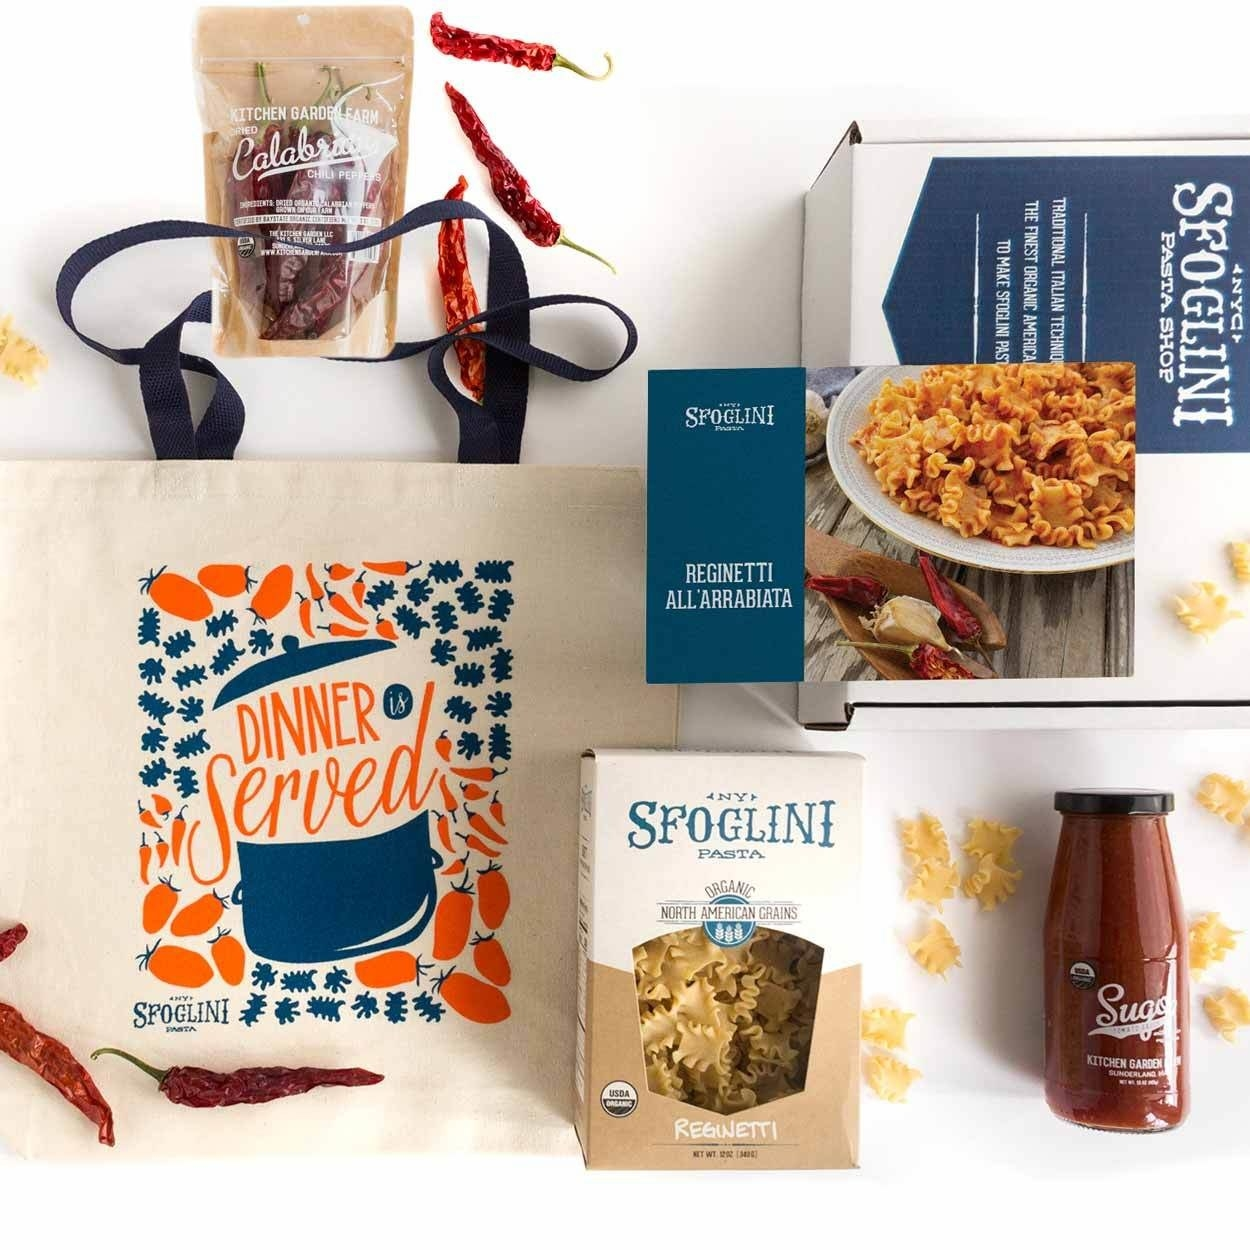 the gift set (including a box of pasta, calabrian chilis, arrabbiata sauce, a canvas tote bag, and a recipe card)